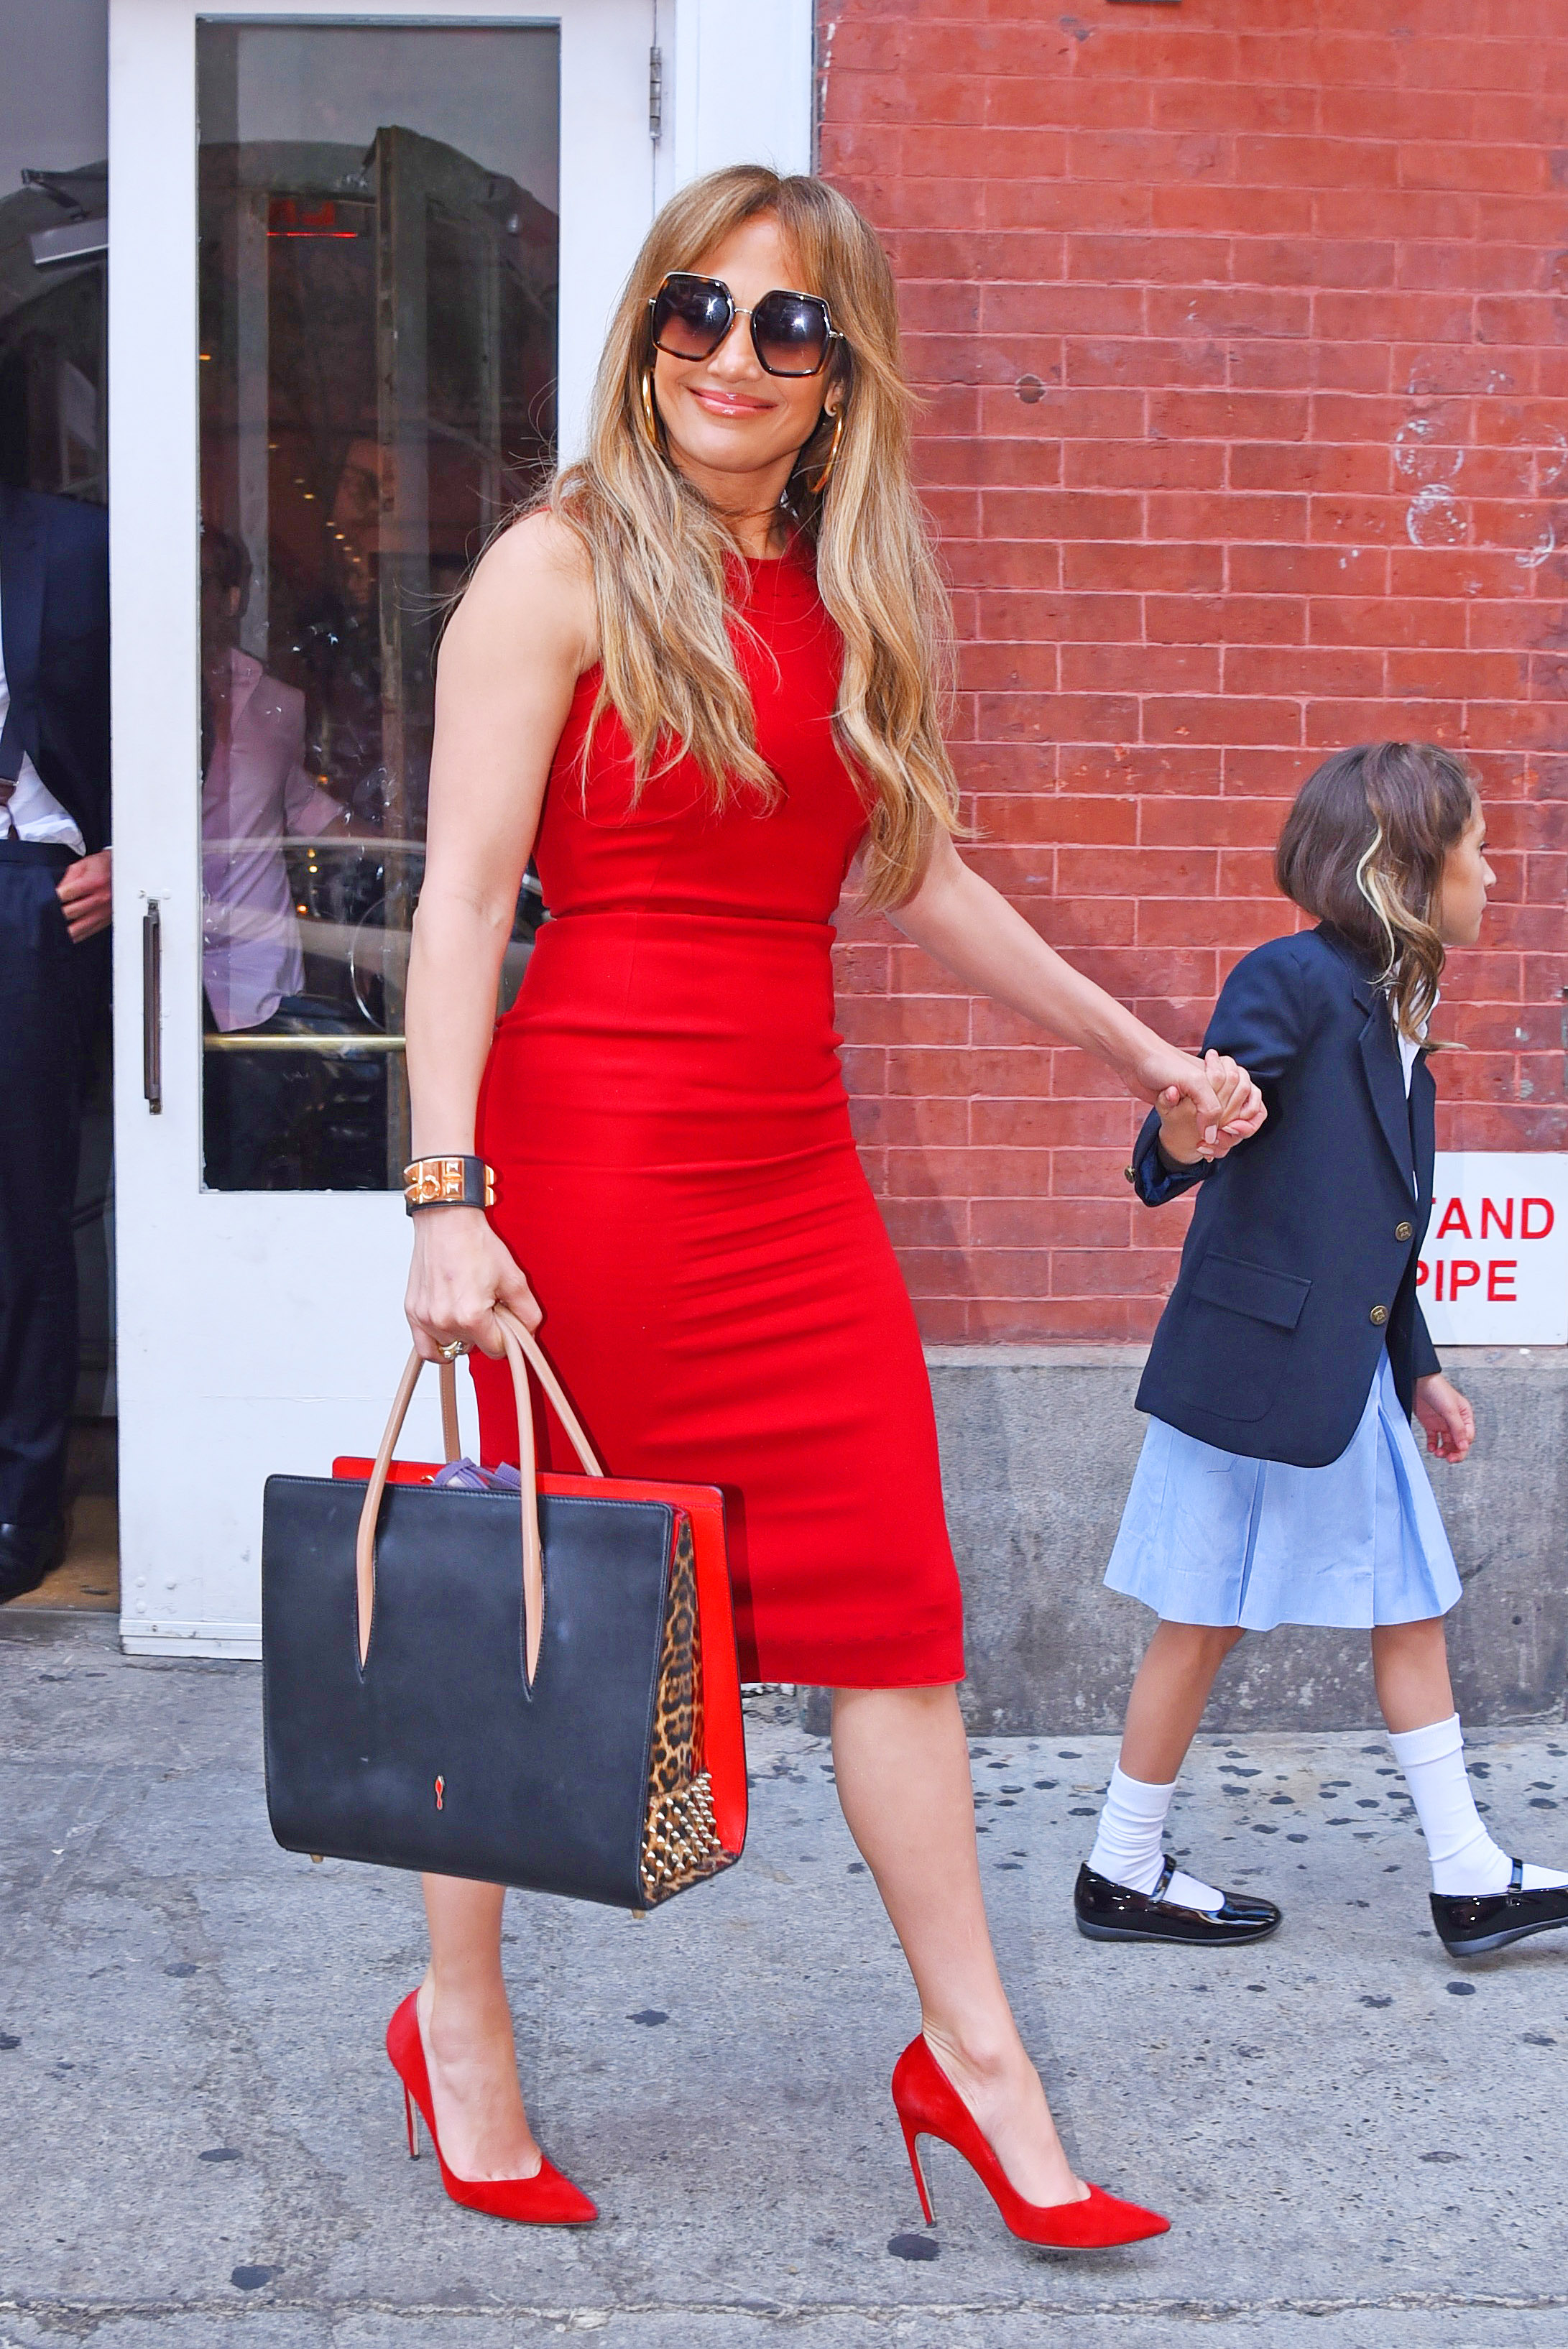 Jennifer Lopez Parades Curves in a Tight Red Pencil Dress as she Heads Out with Alex Rodriguez